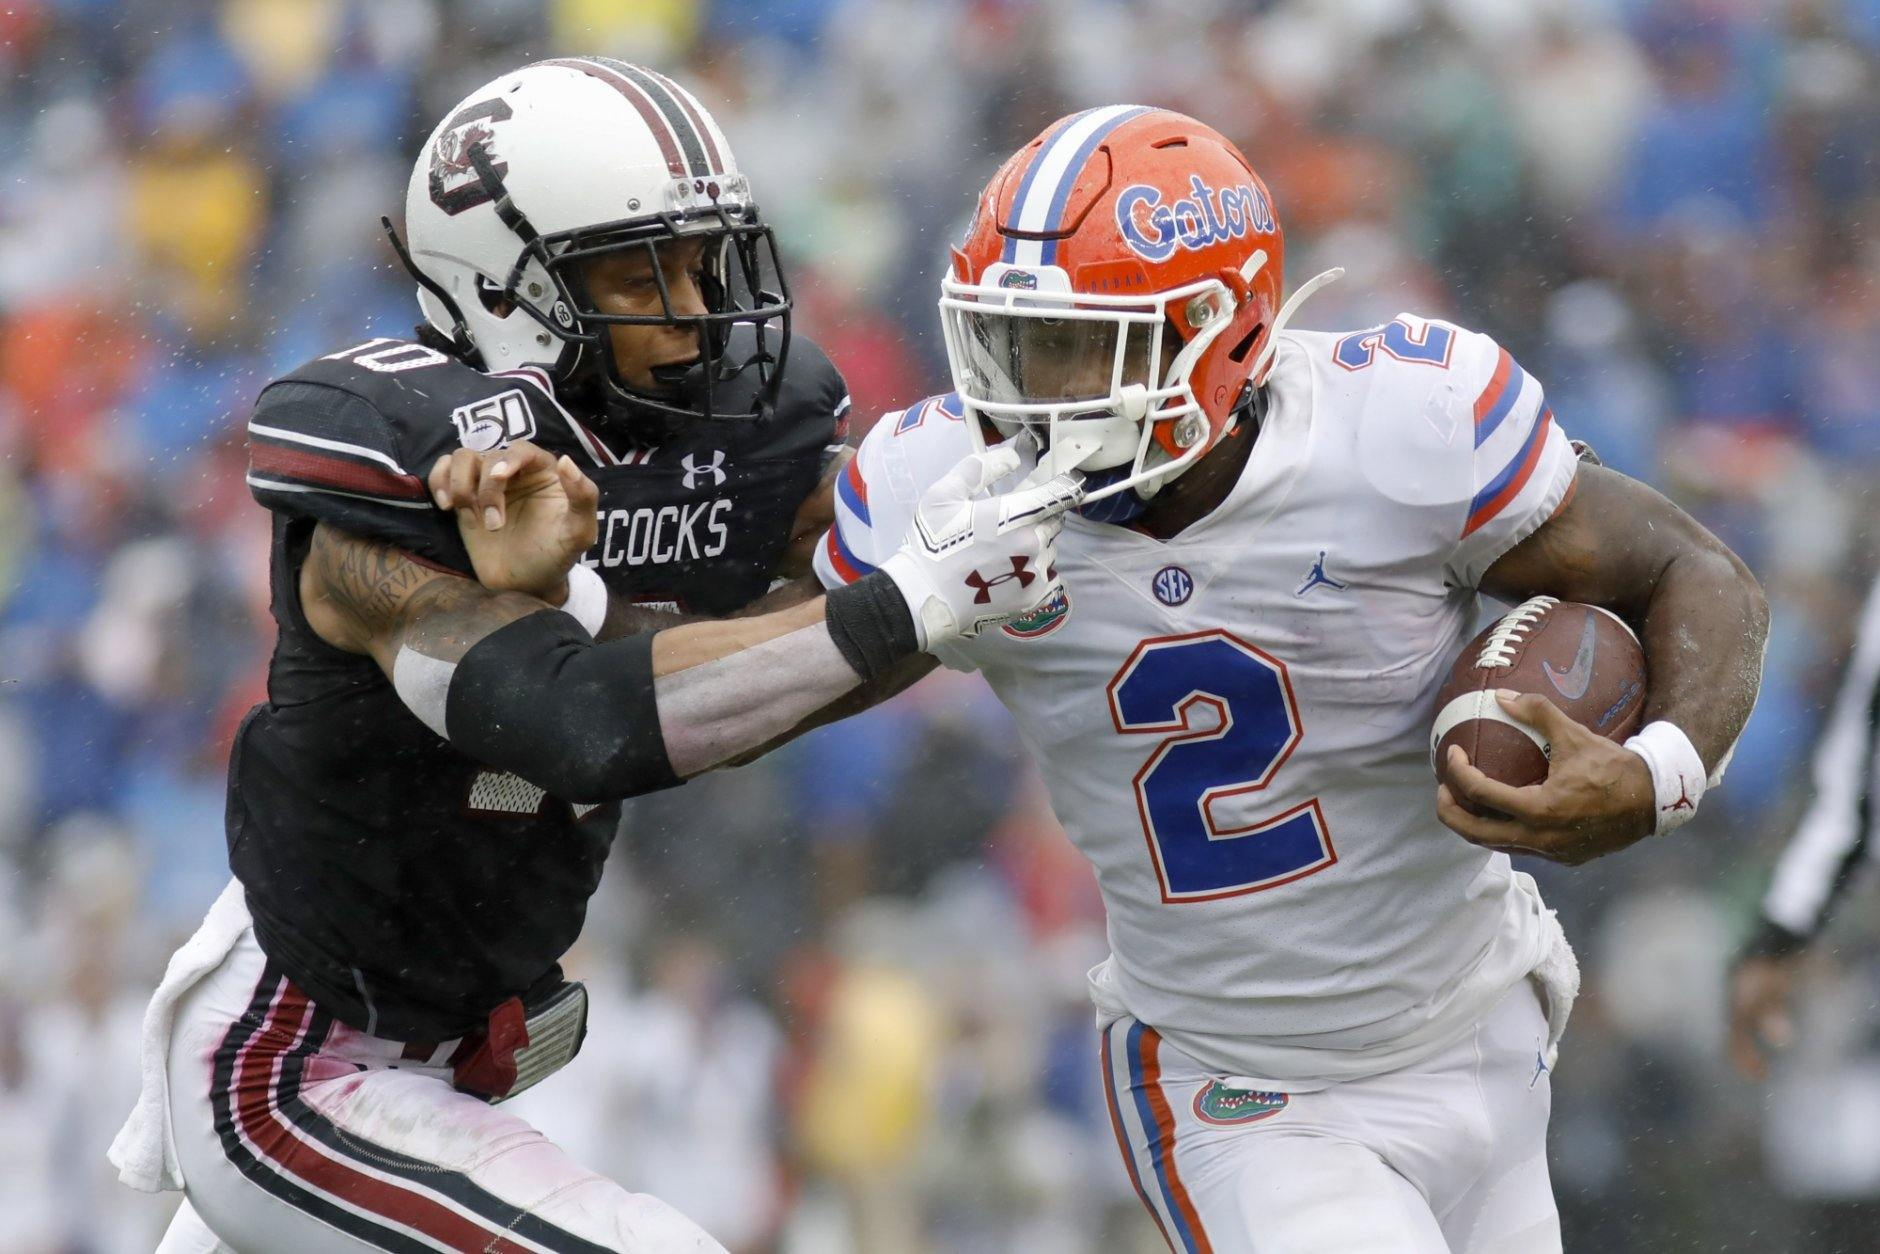 <p><strong>No. 10 Florida (7-2):</strong> Win out, Georgia lose twice in conference, win SEC championship</p> <p>Florida's chances became microscopic with its loss to Georgia last week. And while it's tough to imagine the Bulldogs losing two of their final four games, doing so would keep the door ajar for the Gators. Run the table, then take down an undefeated Alabama or LSU in the title game? It's not likely, but it's possible.</p>